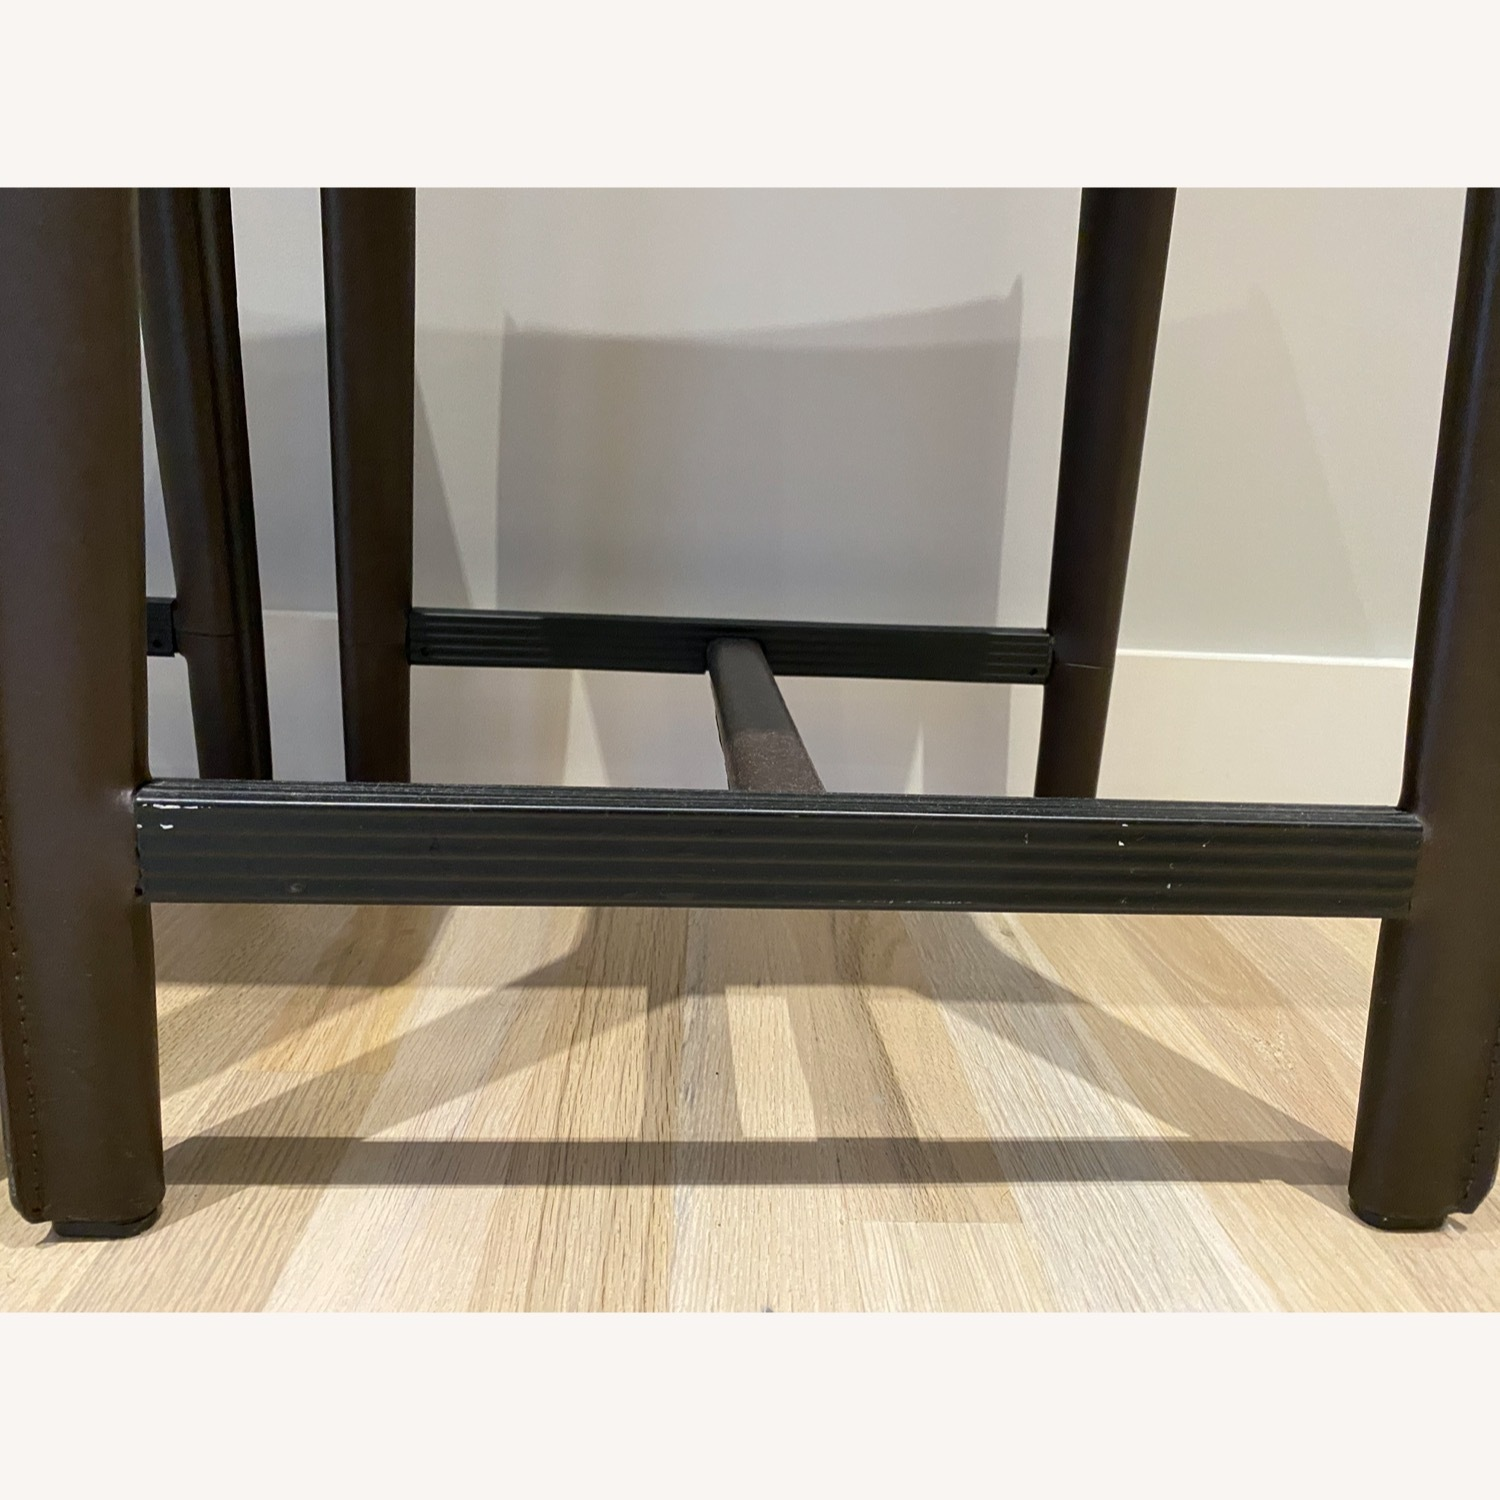 Set of Crate & Barrel Backless Counter Stools - image-5